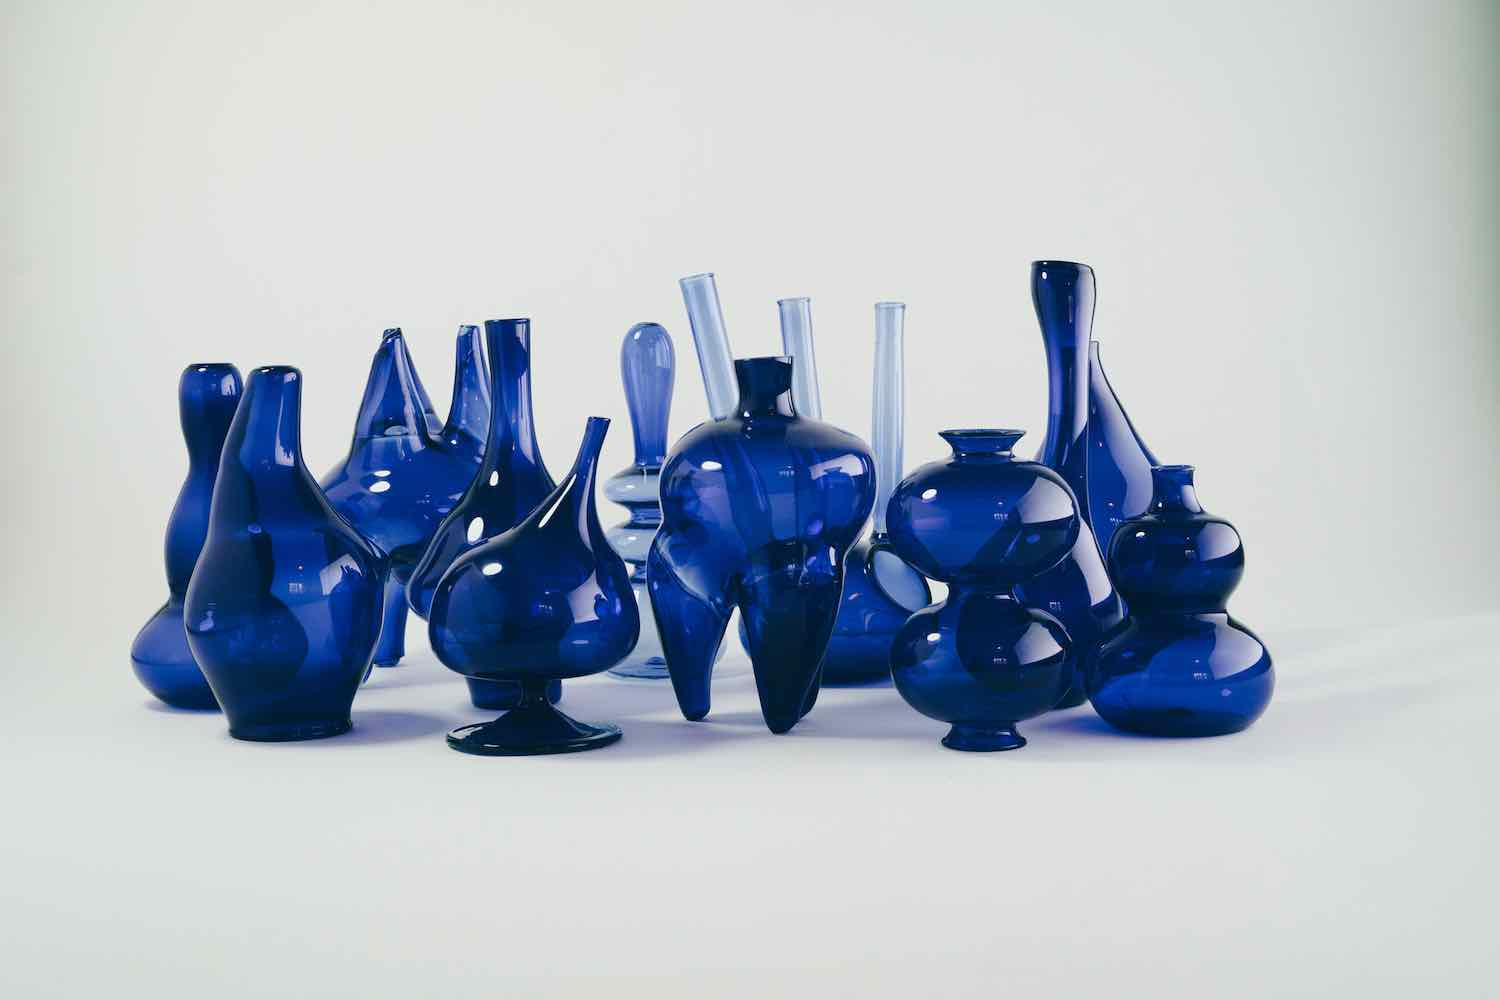 HERE AND THERE - A PALESTINIAN COLLECTION. Vessels by Hollow Forms - Photo by Mothanna Hussein, courtesy of F ADORNO-